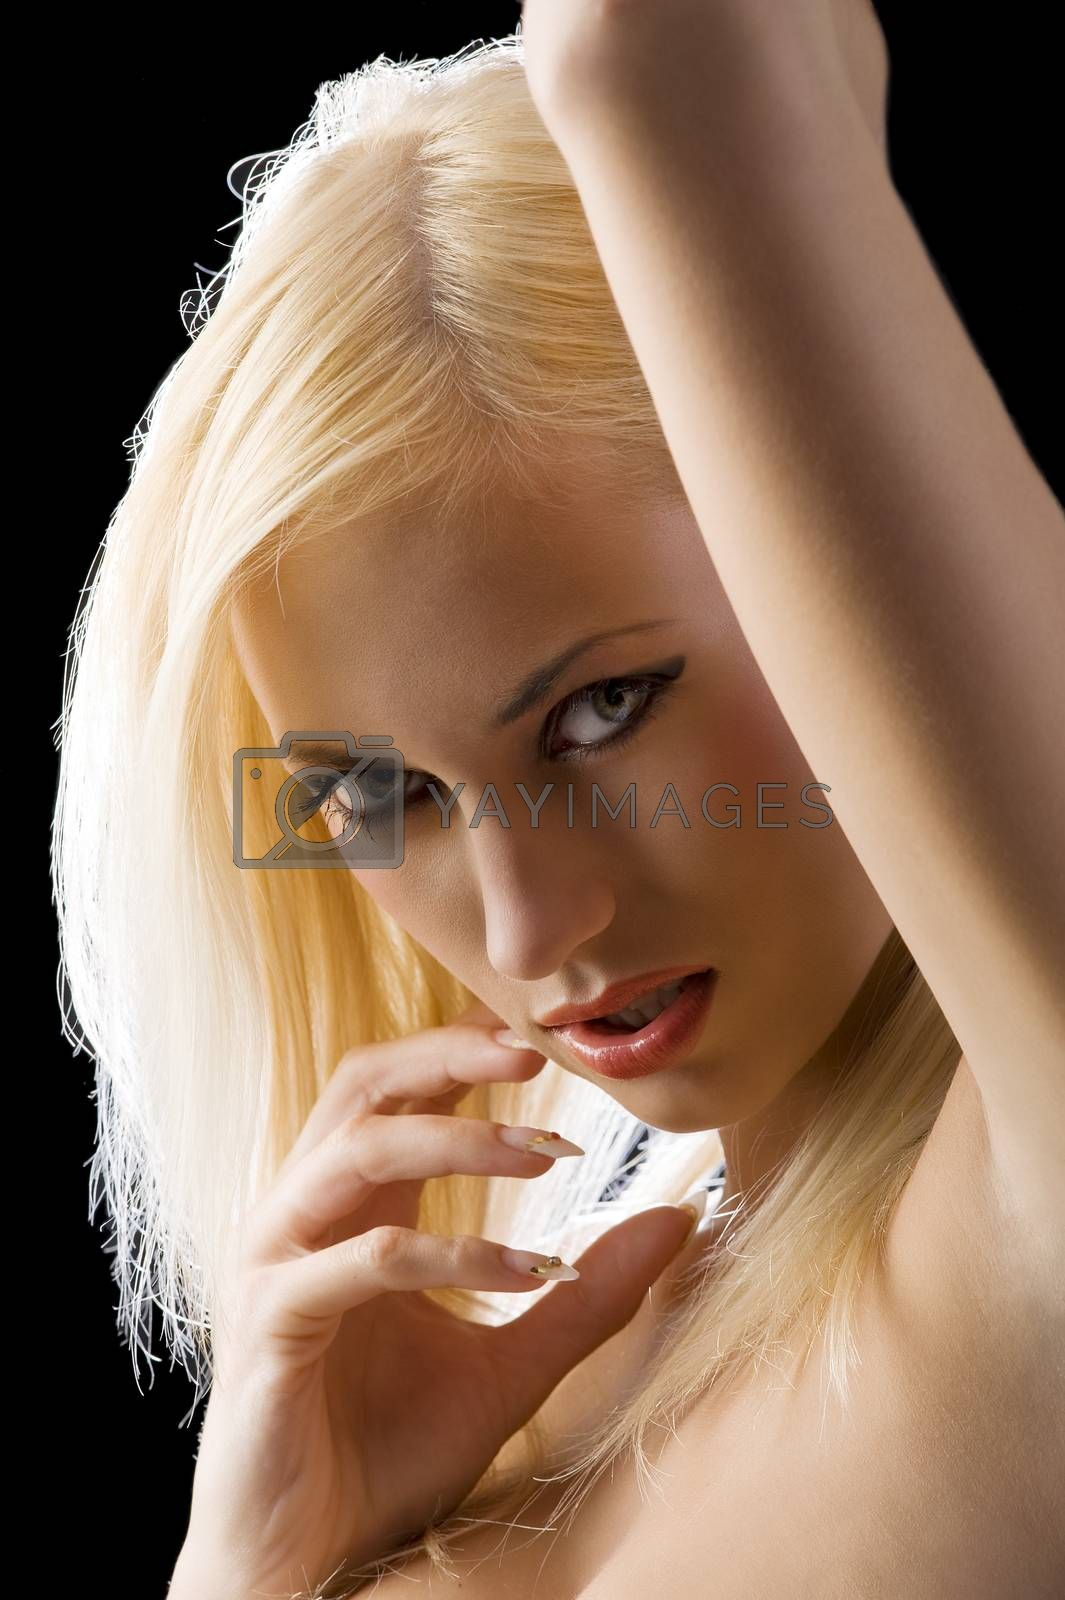 Royalty free image of blond sexy girl  by fotoCD